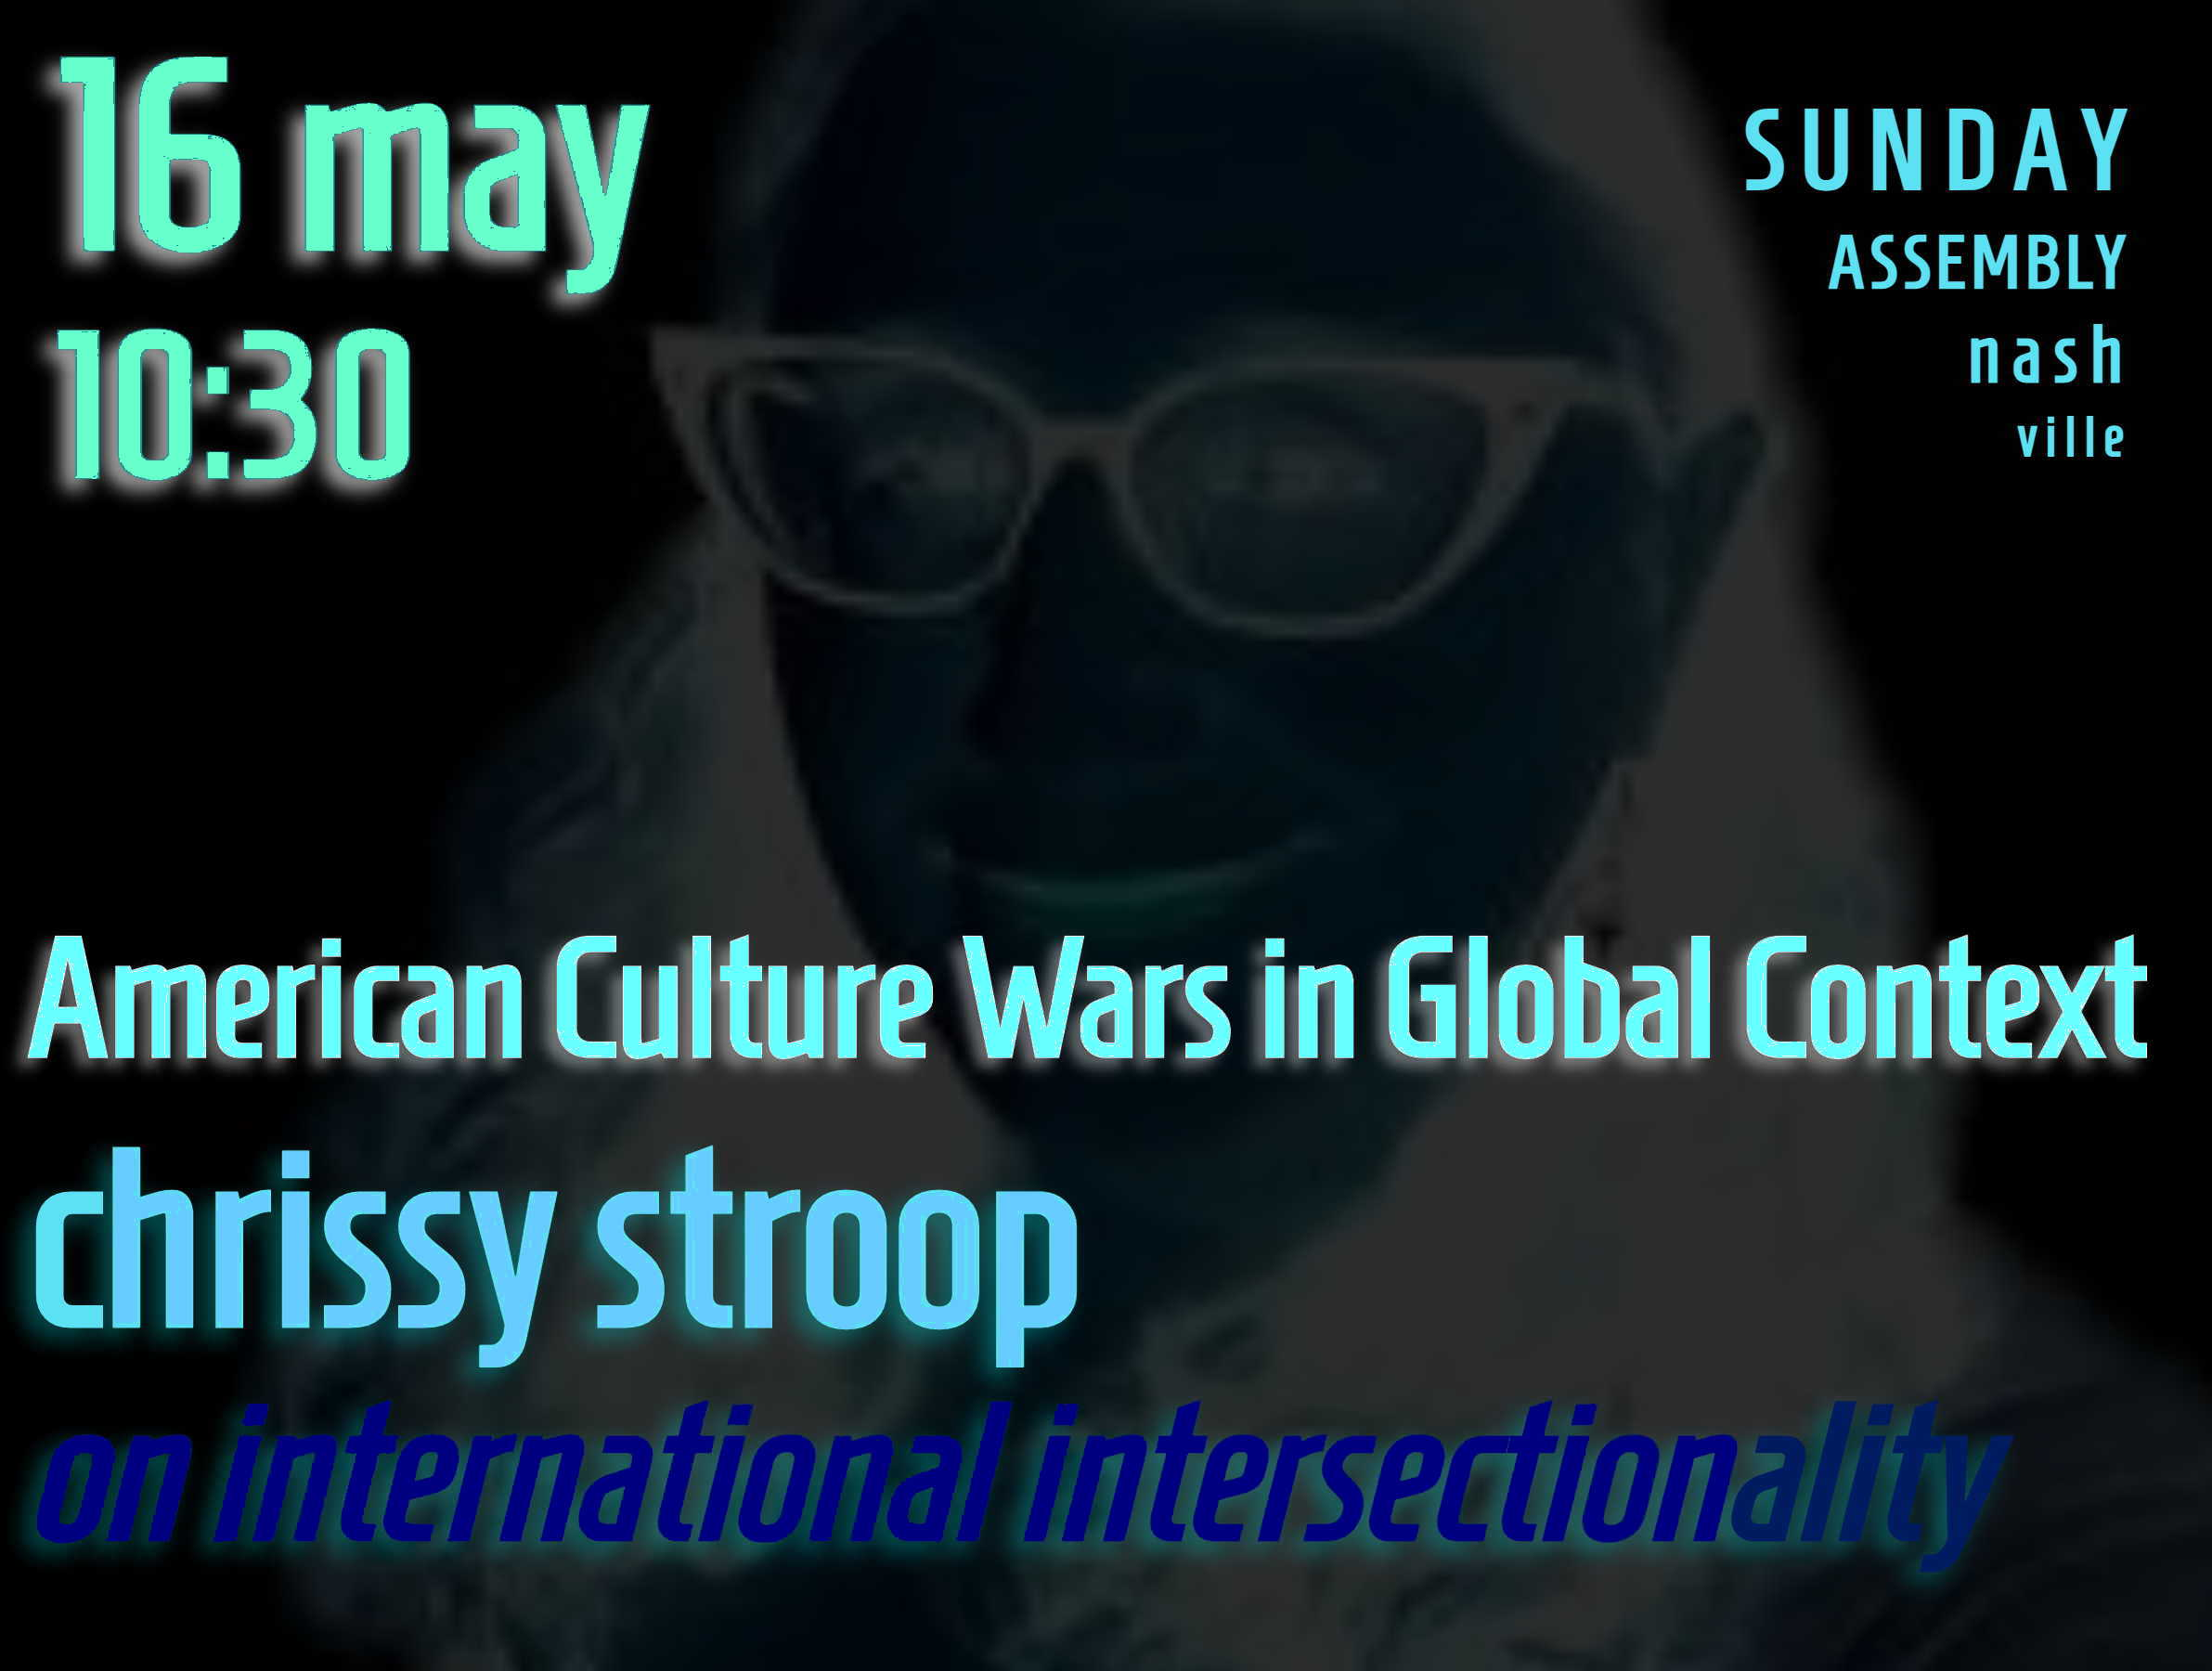 American Culture Wars in Global Context